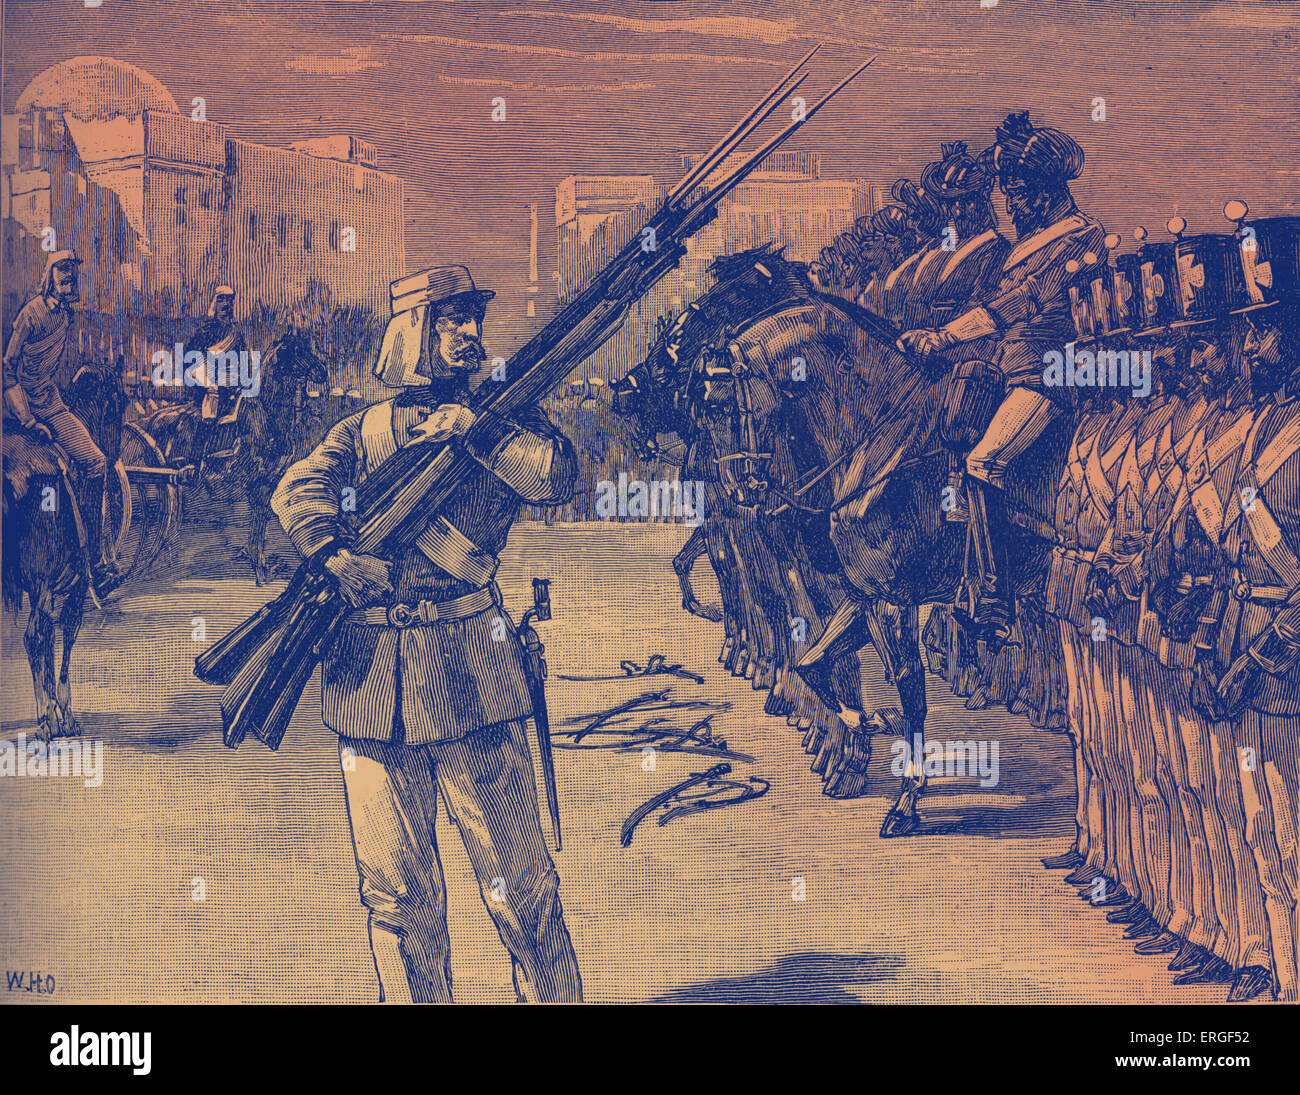 Disarmament of the 26th Indian regiment at Barrackpore, India. During the Indian Mutiny of 1857. Began as  mutiny - Stock Image